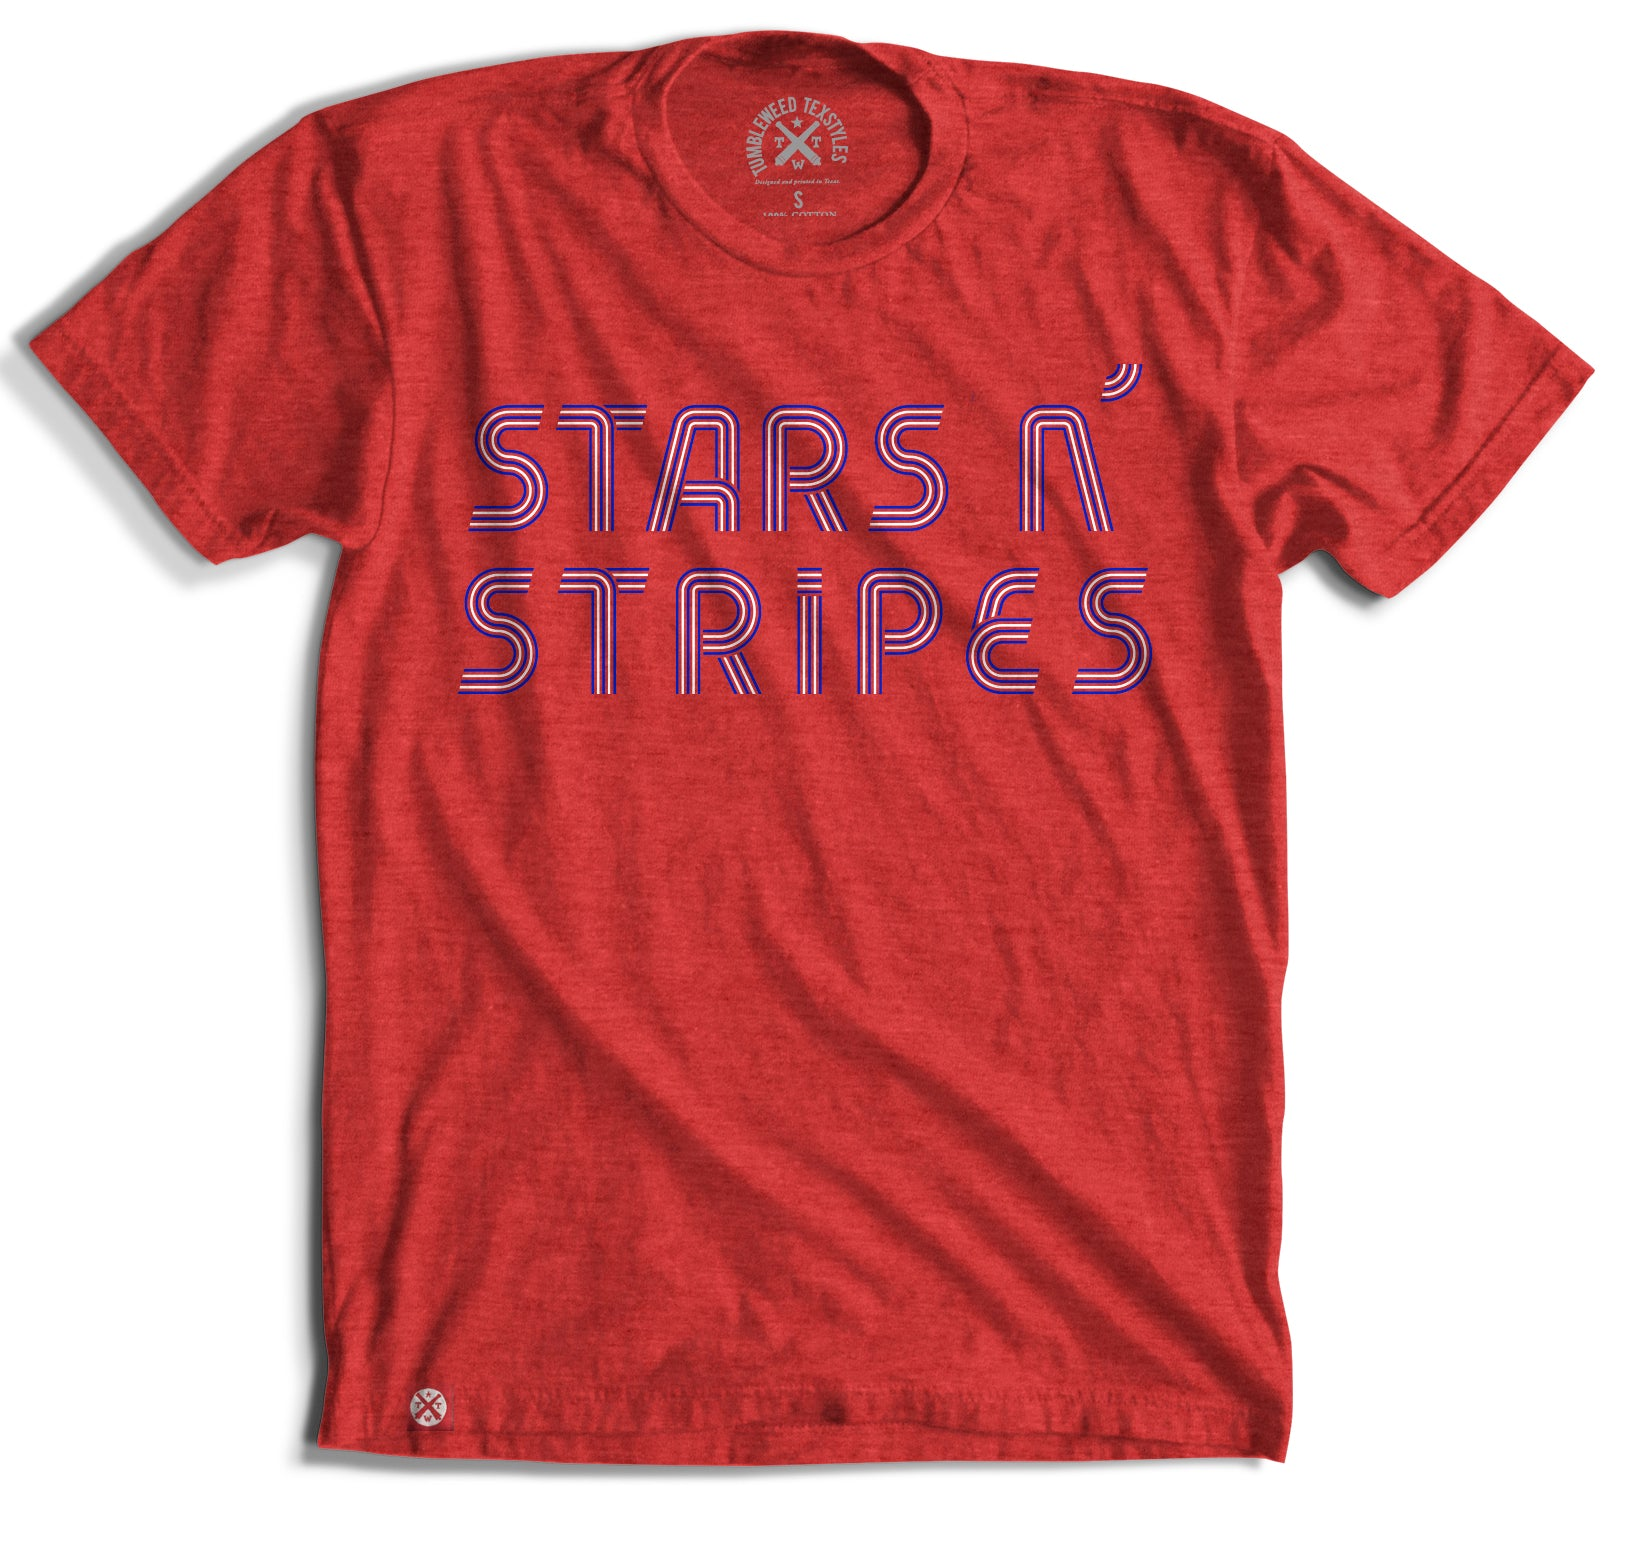 Stars N' Stripes T-Shirt